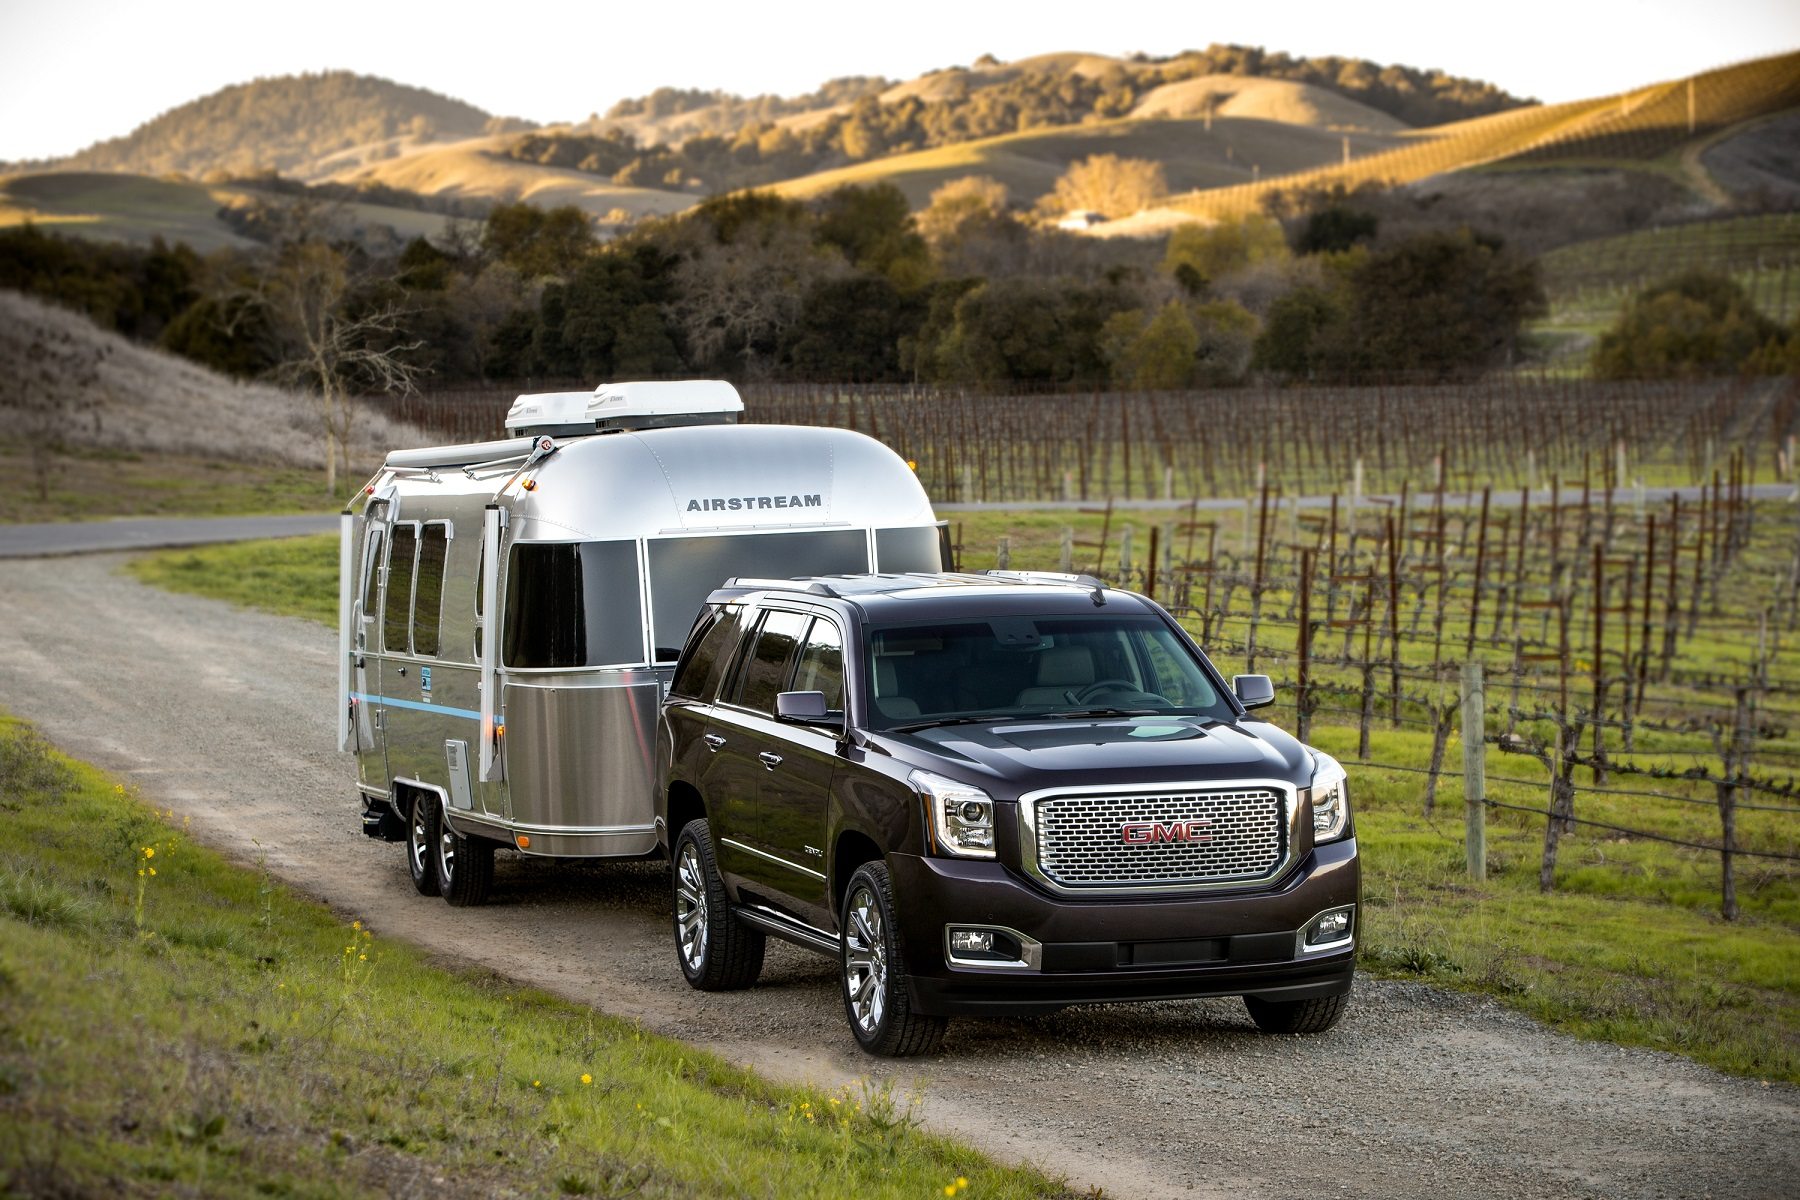 Manufacturer photo: GMC's all-new 2015 Yukon delivers greater capability and refinement, with more power, new fold-flat rear seats and a quieter interior